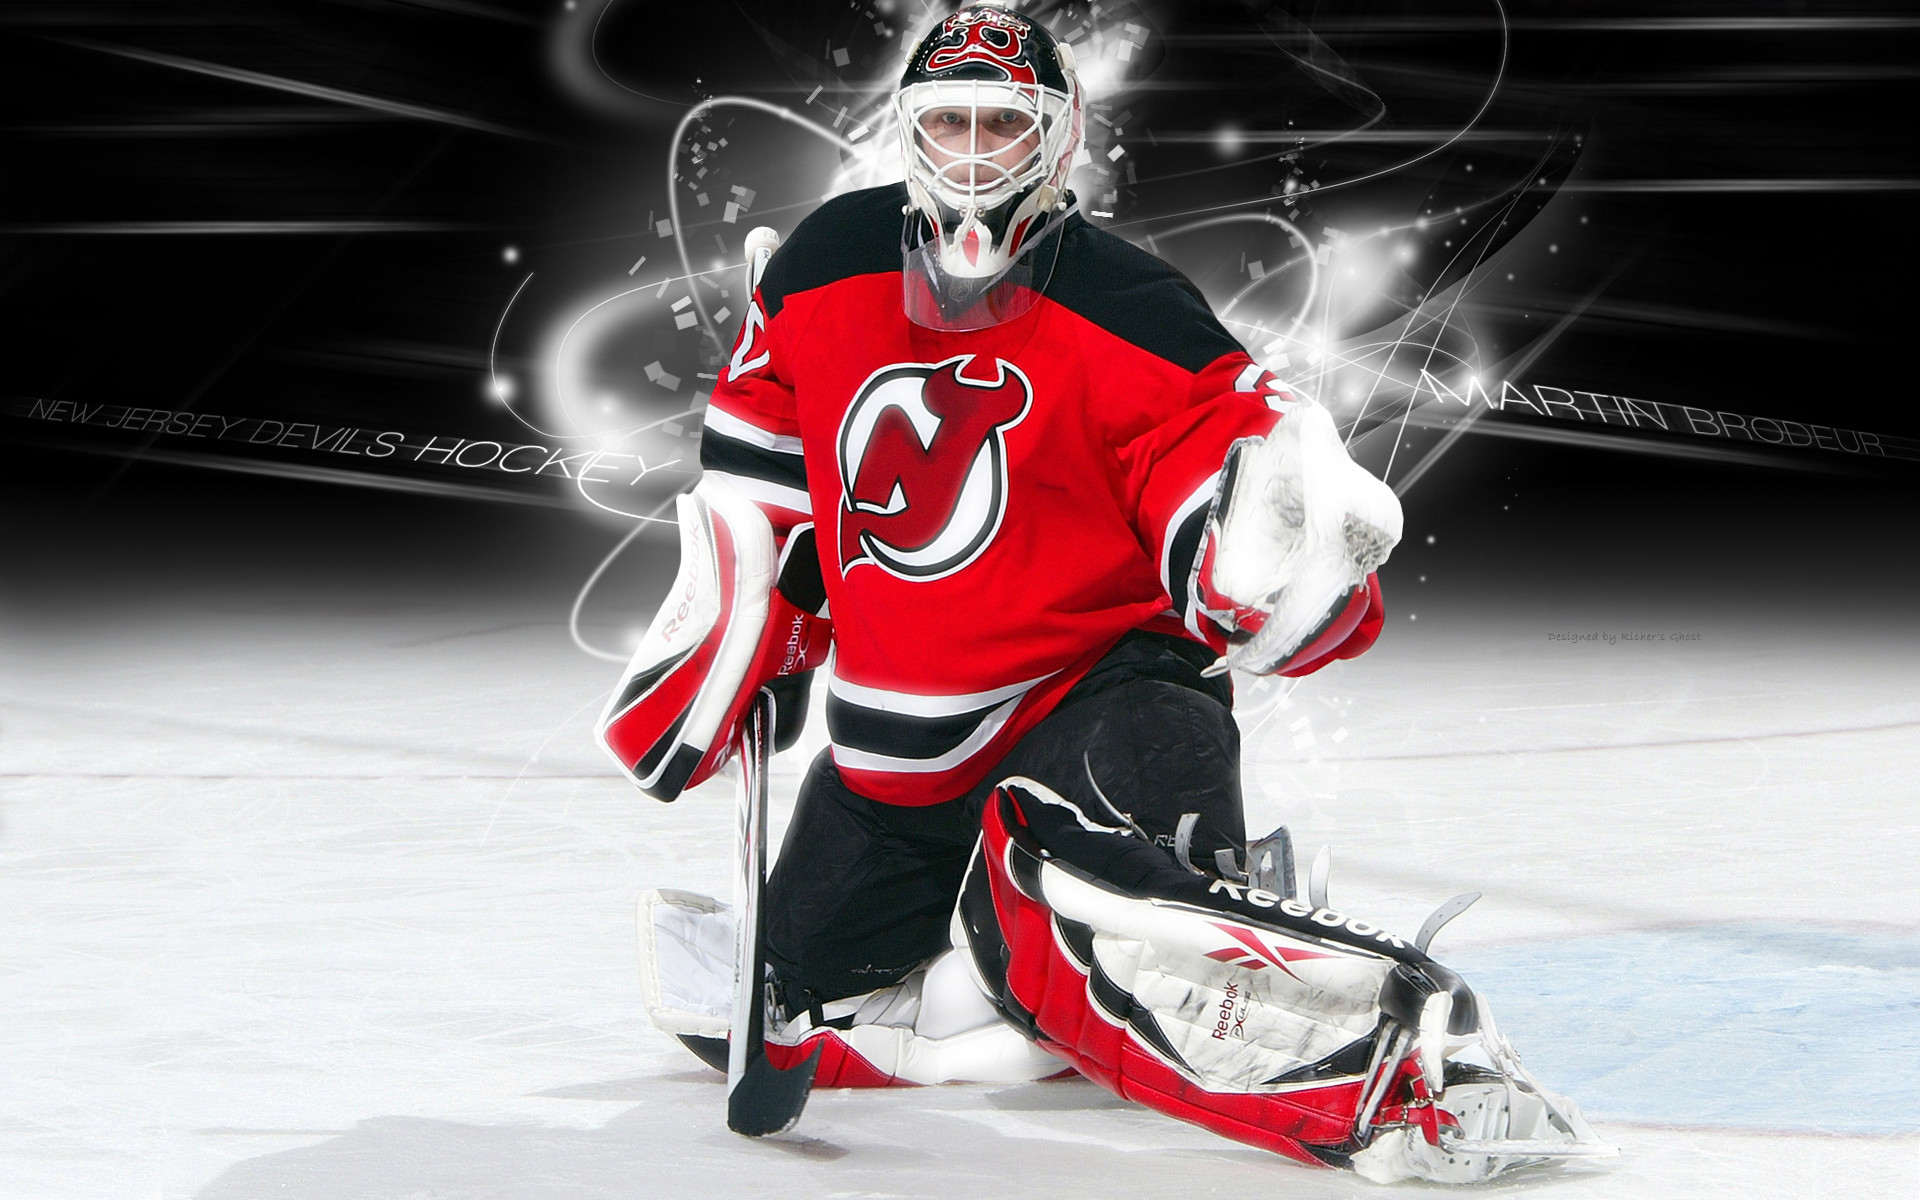 Nhl Hockey Wallpaper 61 Pictures